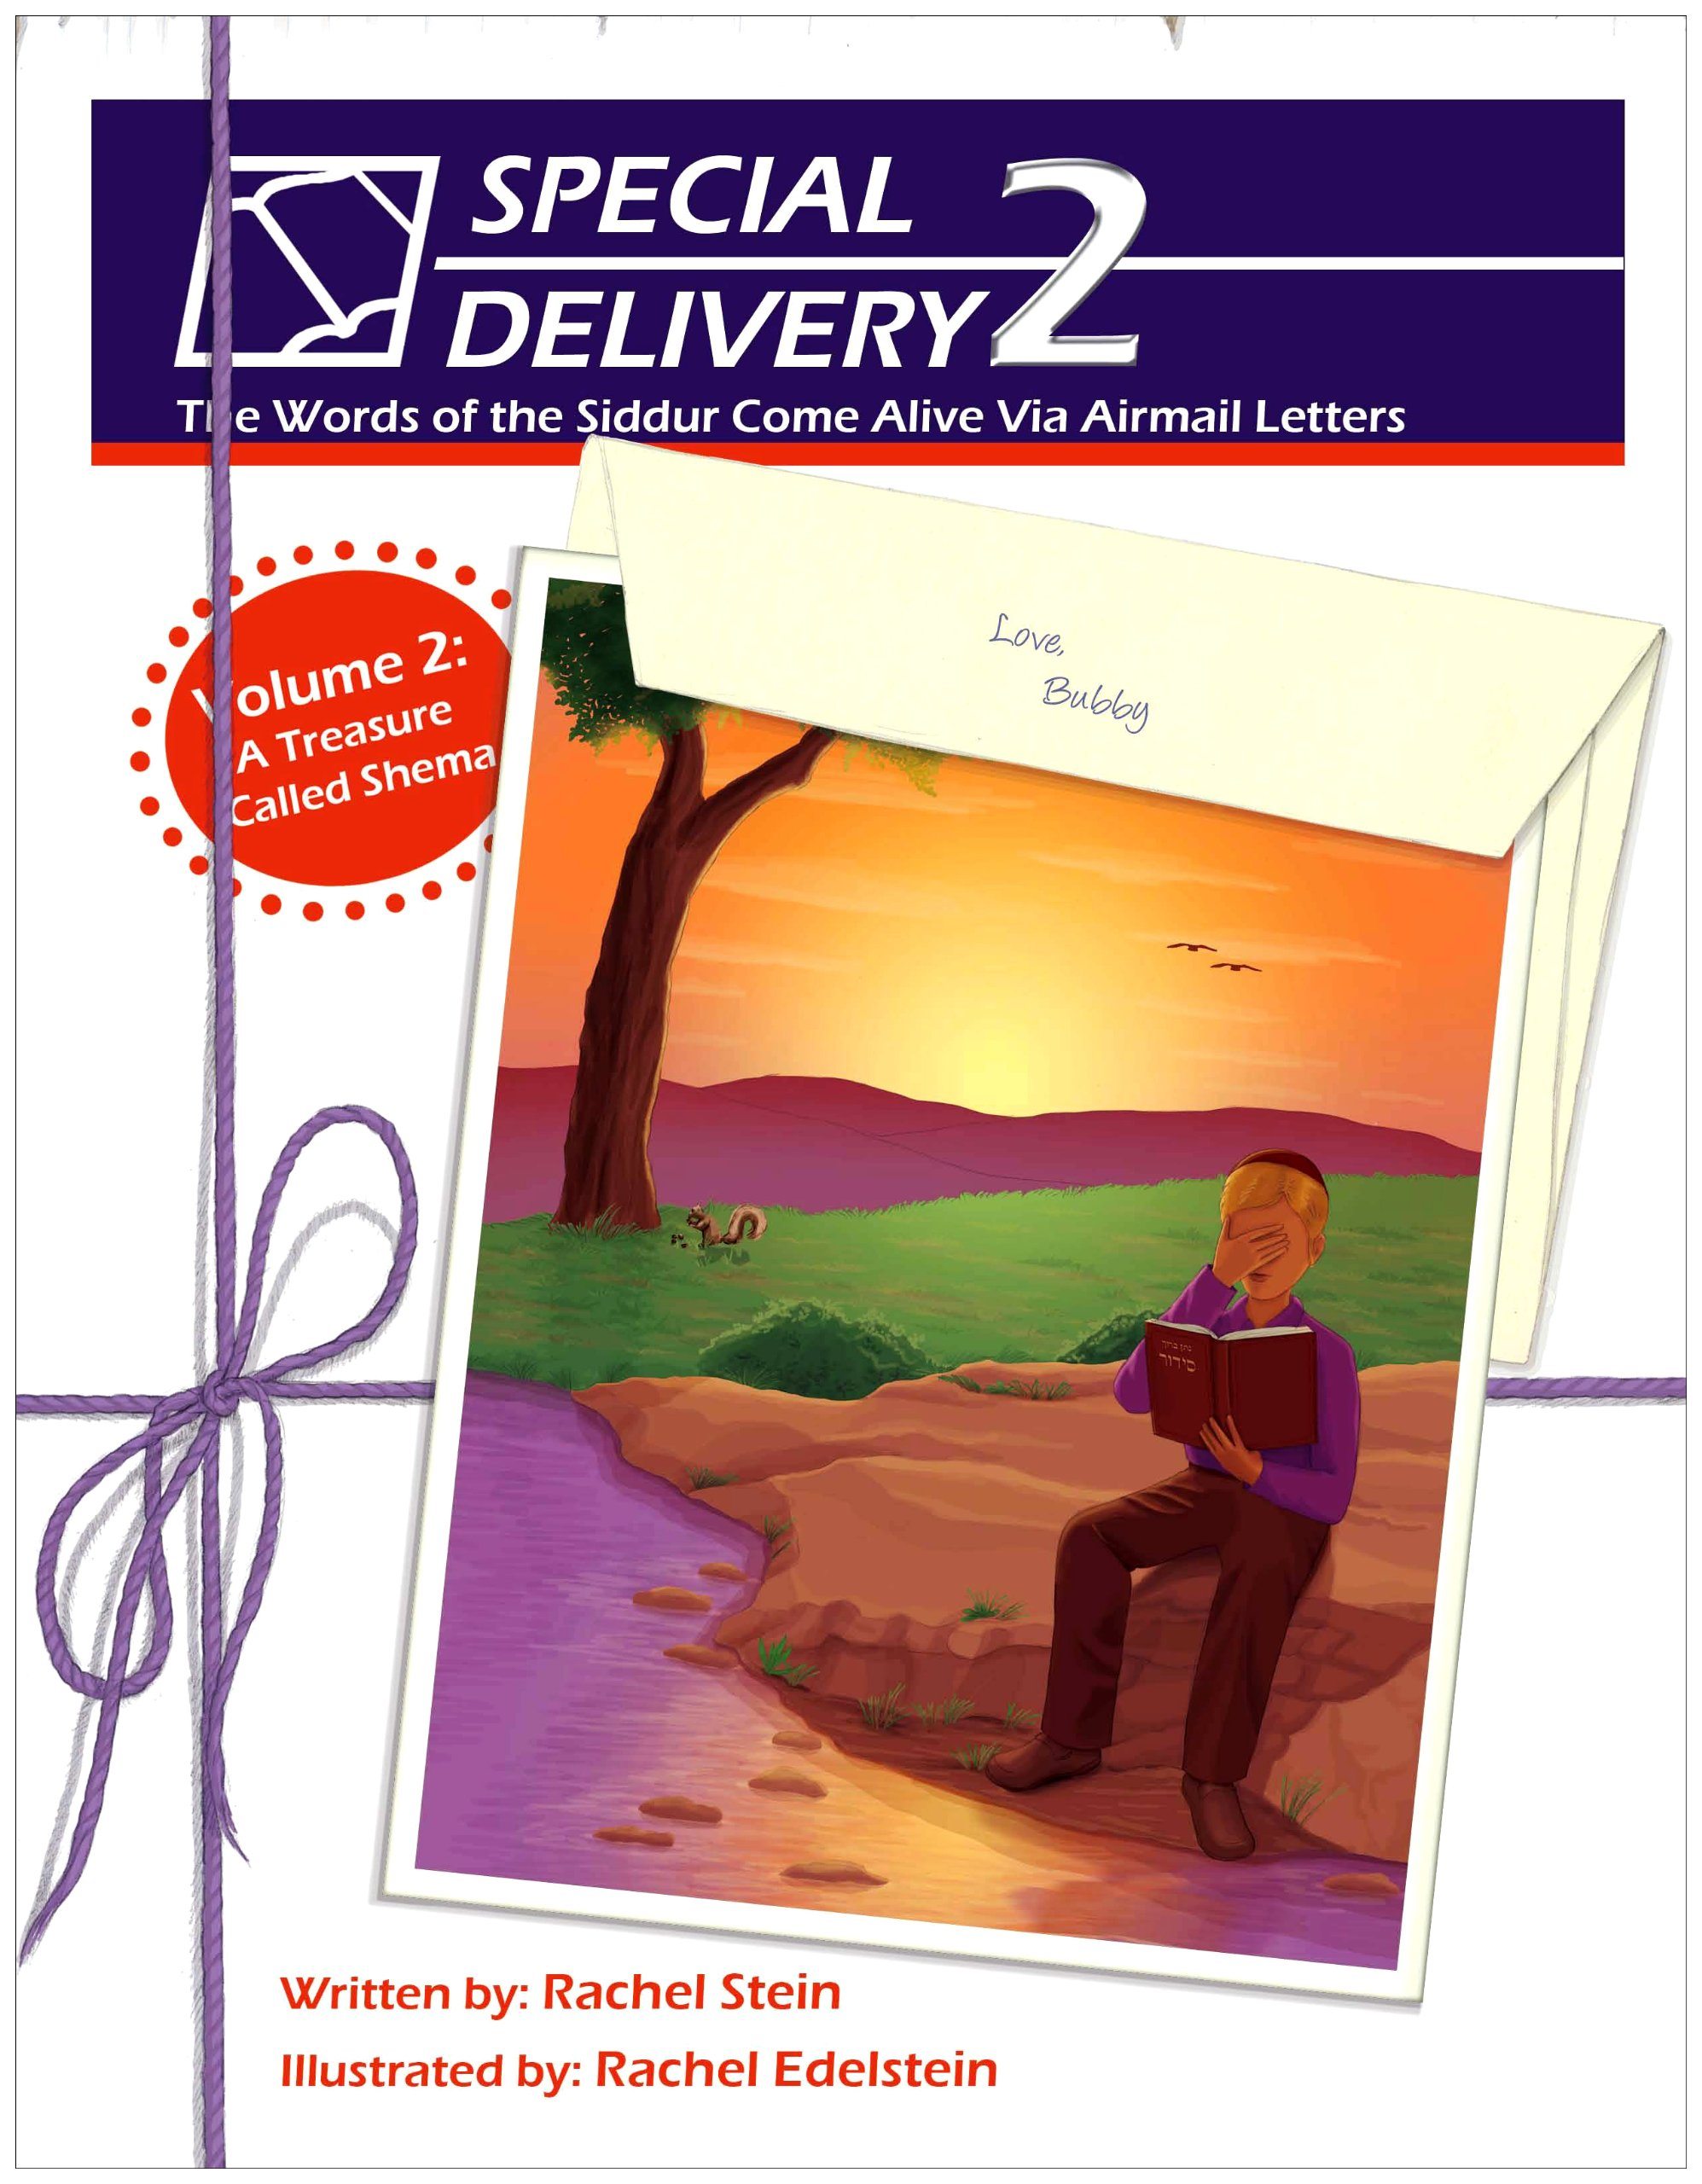 Download Special Delivery 2: A Treasure Called Shema PDF